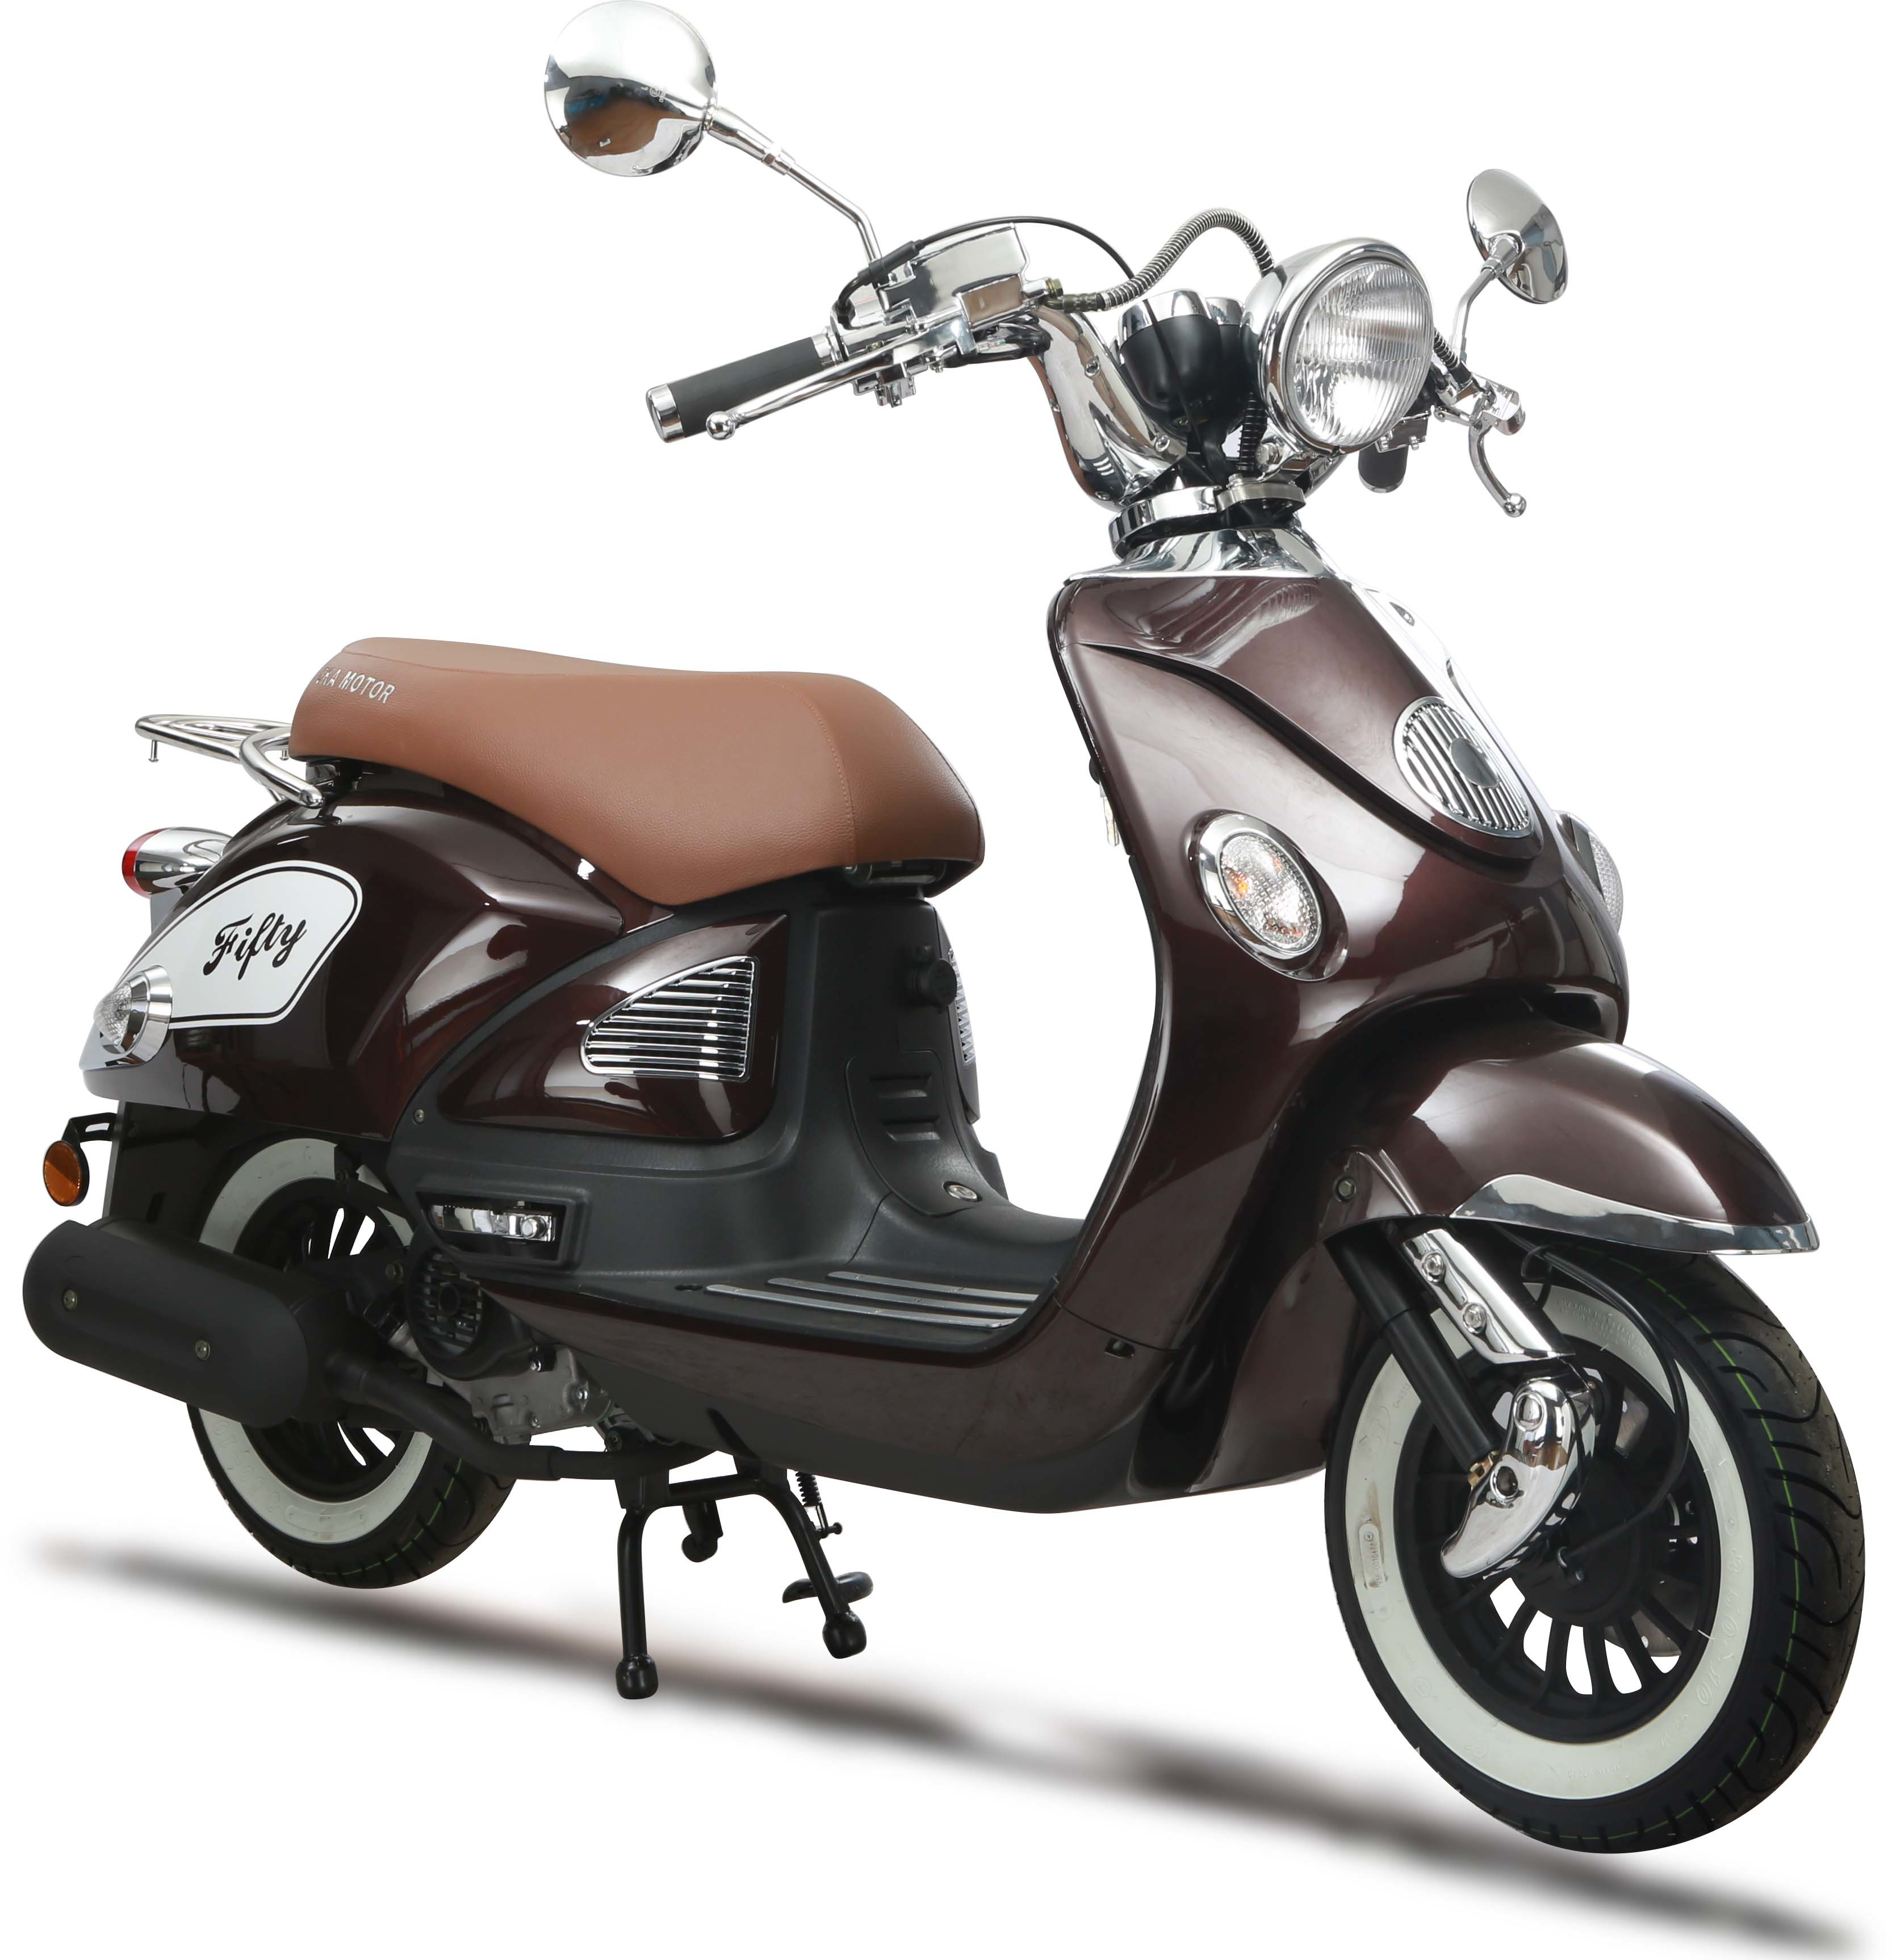 eurocka scooter fifty 50cc 4t marron immat achat vente scooters 50 pas cher rueducommerce. Black Bedroom Furniture Sets. Home Design Ideas